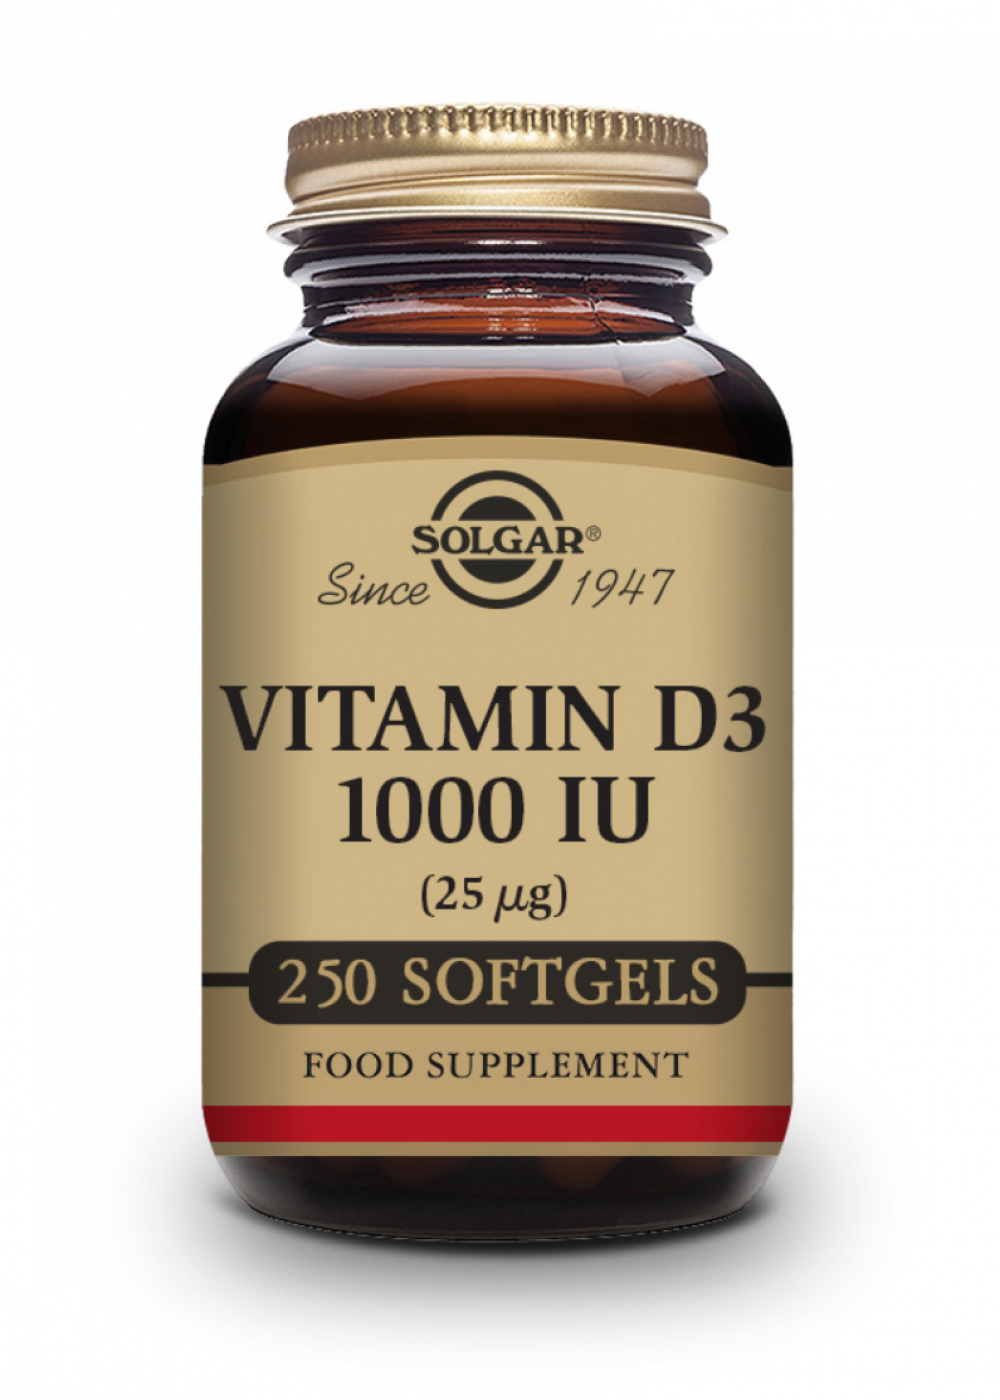 Solgar Vitamin D 25mcg (1000 IU) 250 Softgels